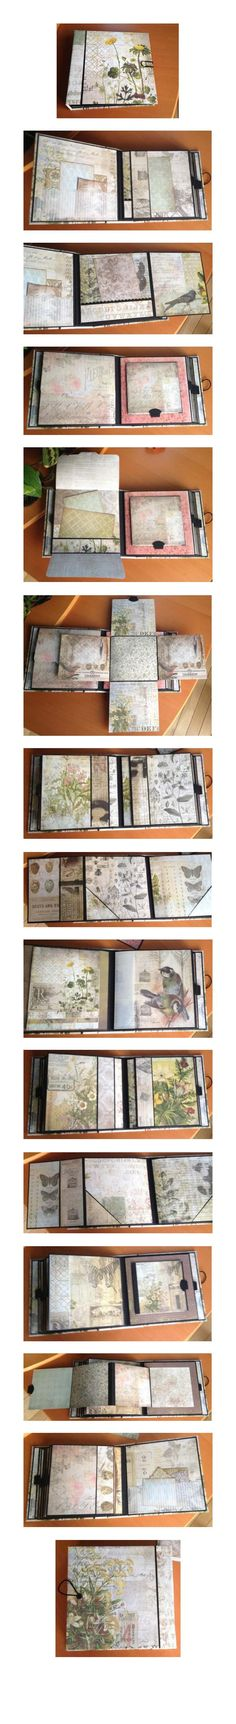 8x8 mini album using Tim Holtz Wallflower papers